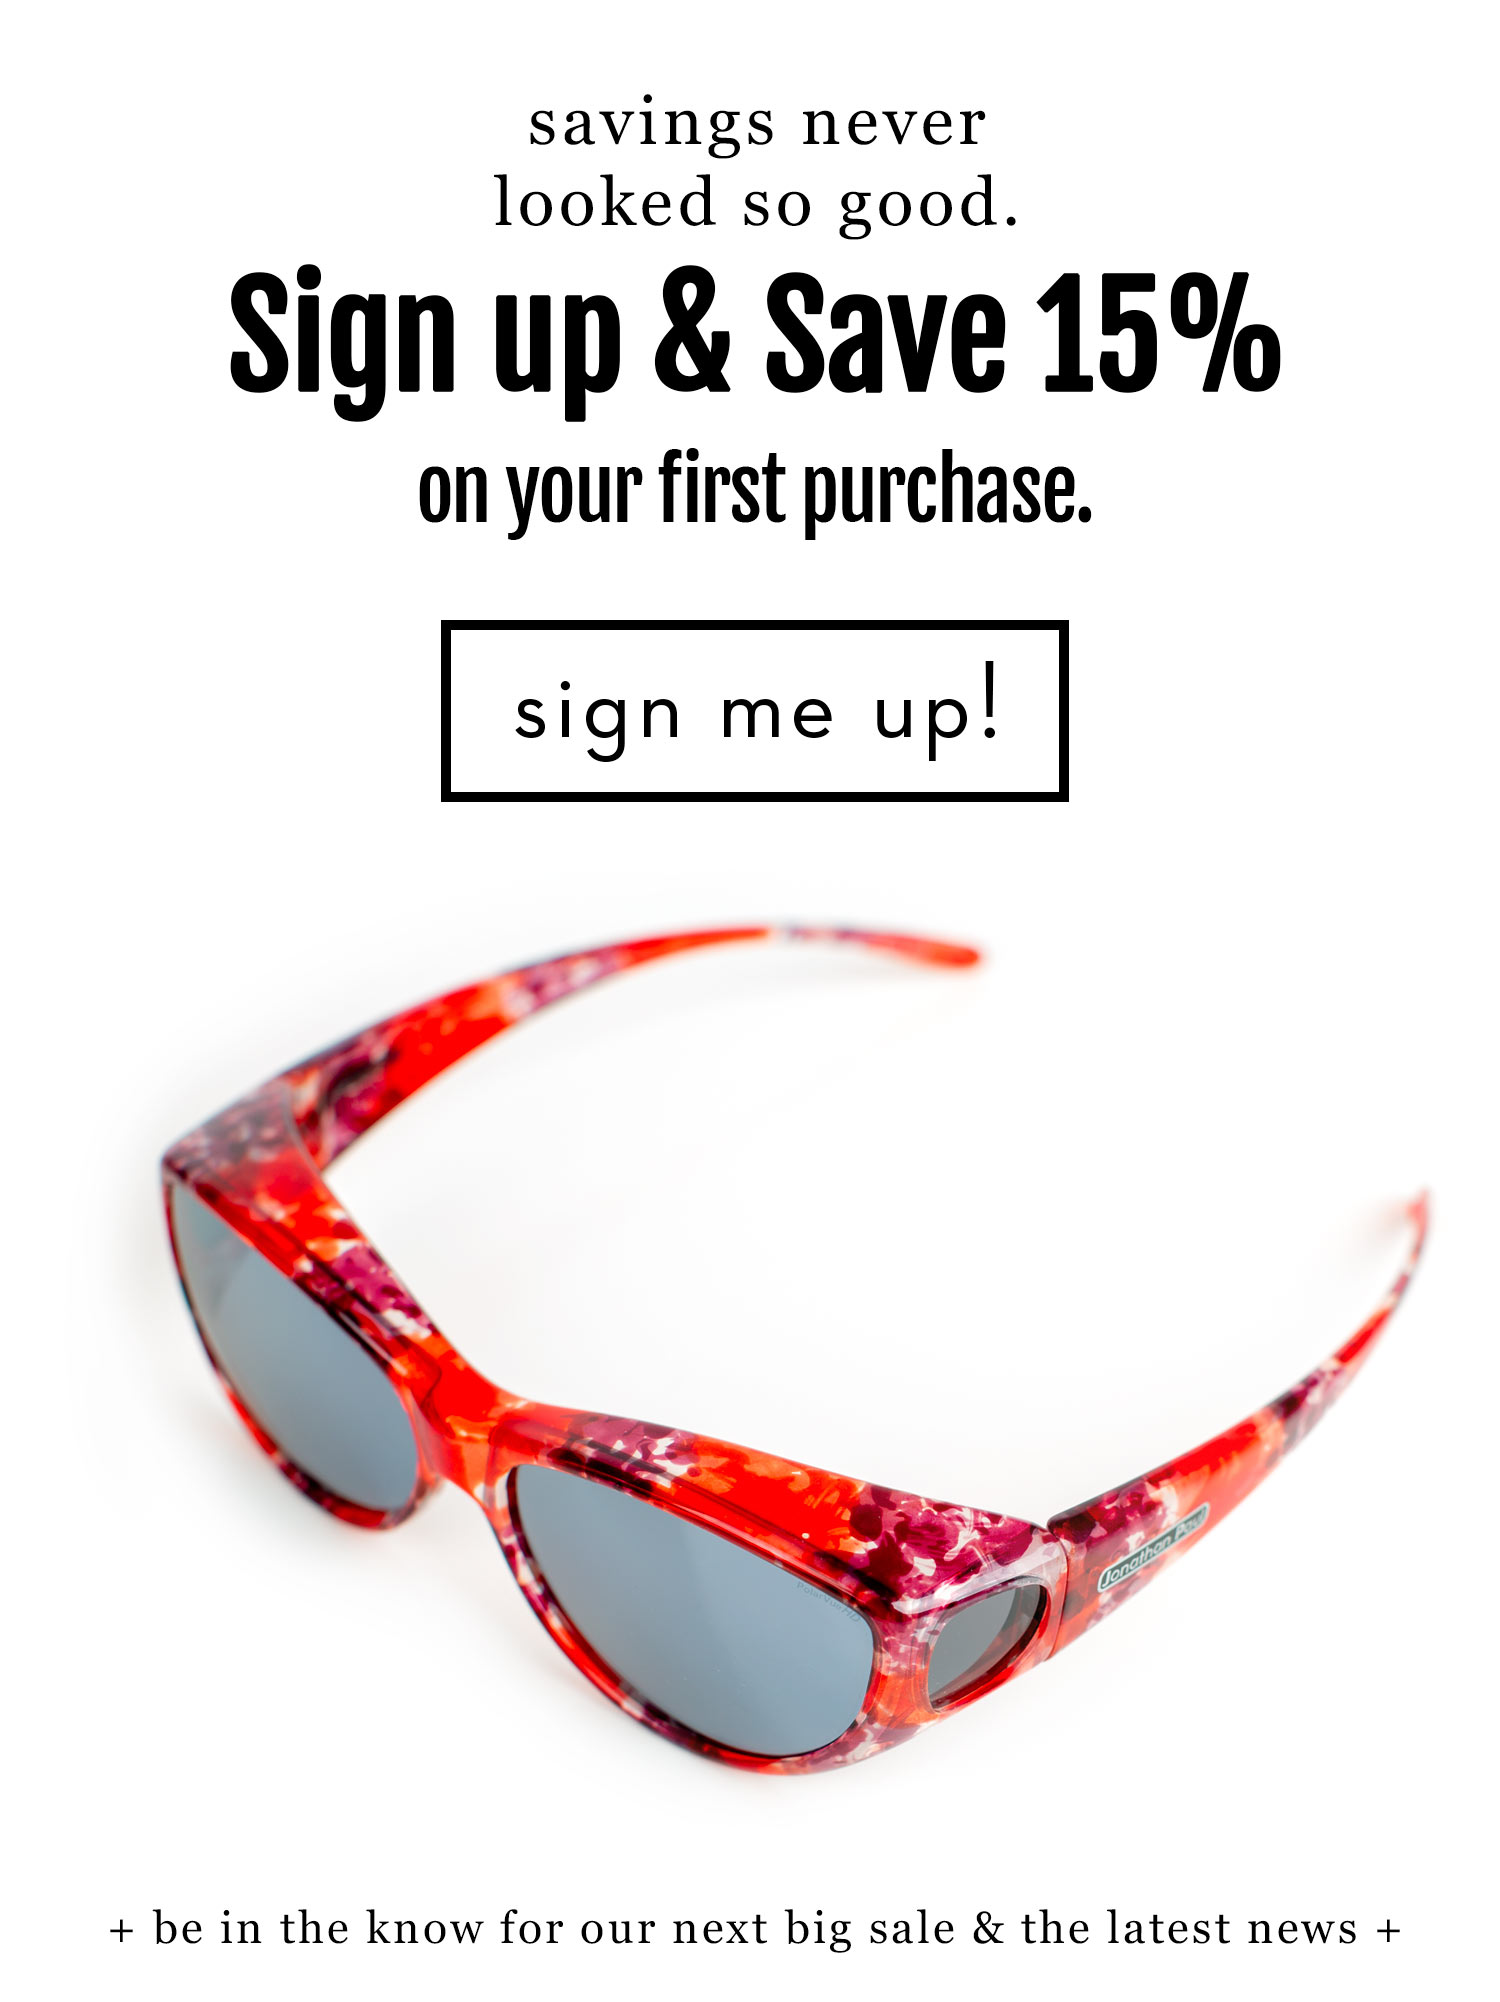 The Ikara Fitover Sunglasses with 15% off